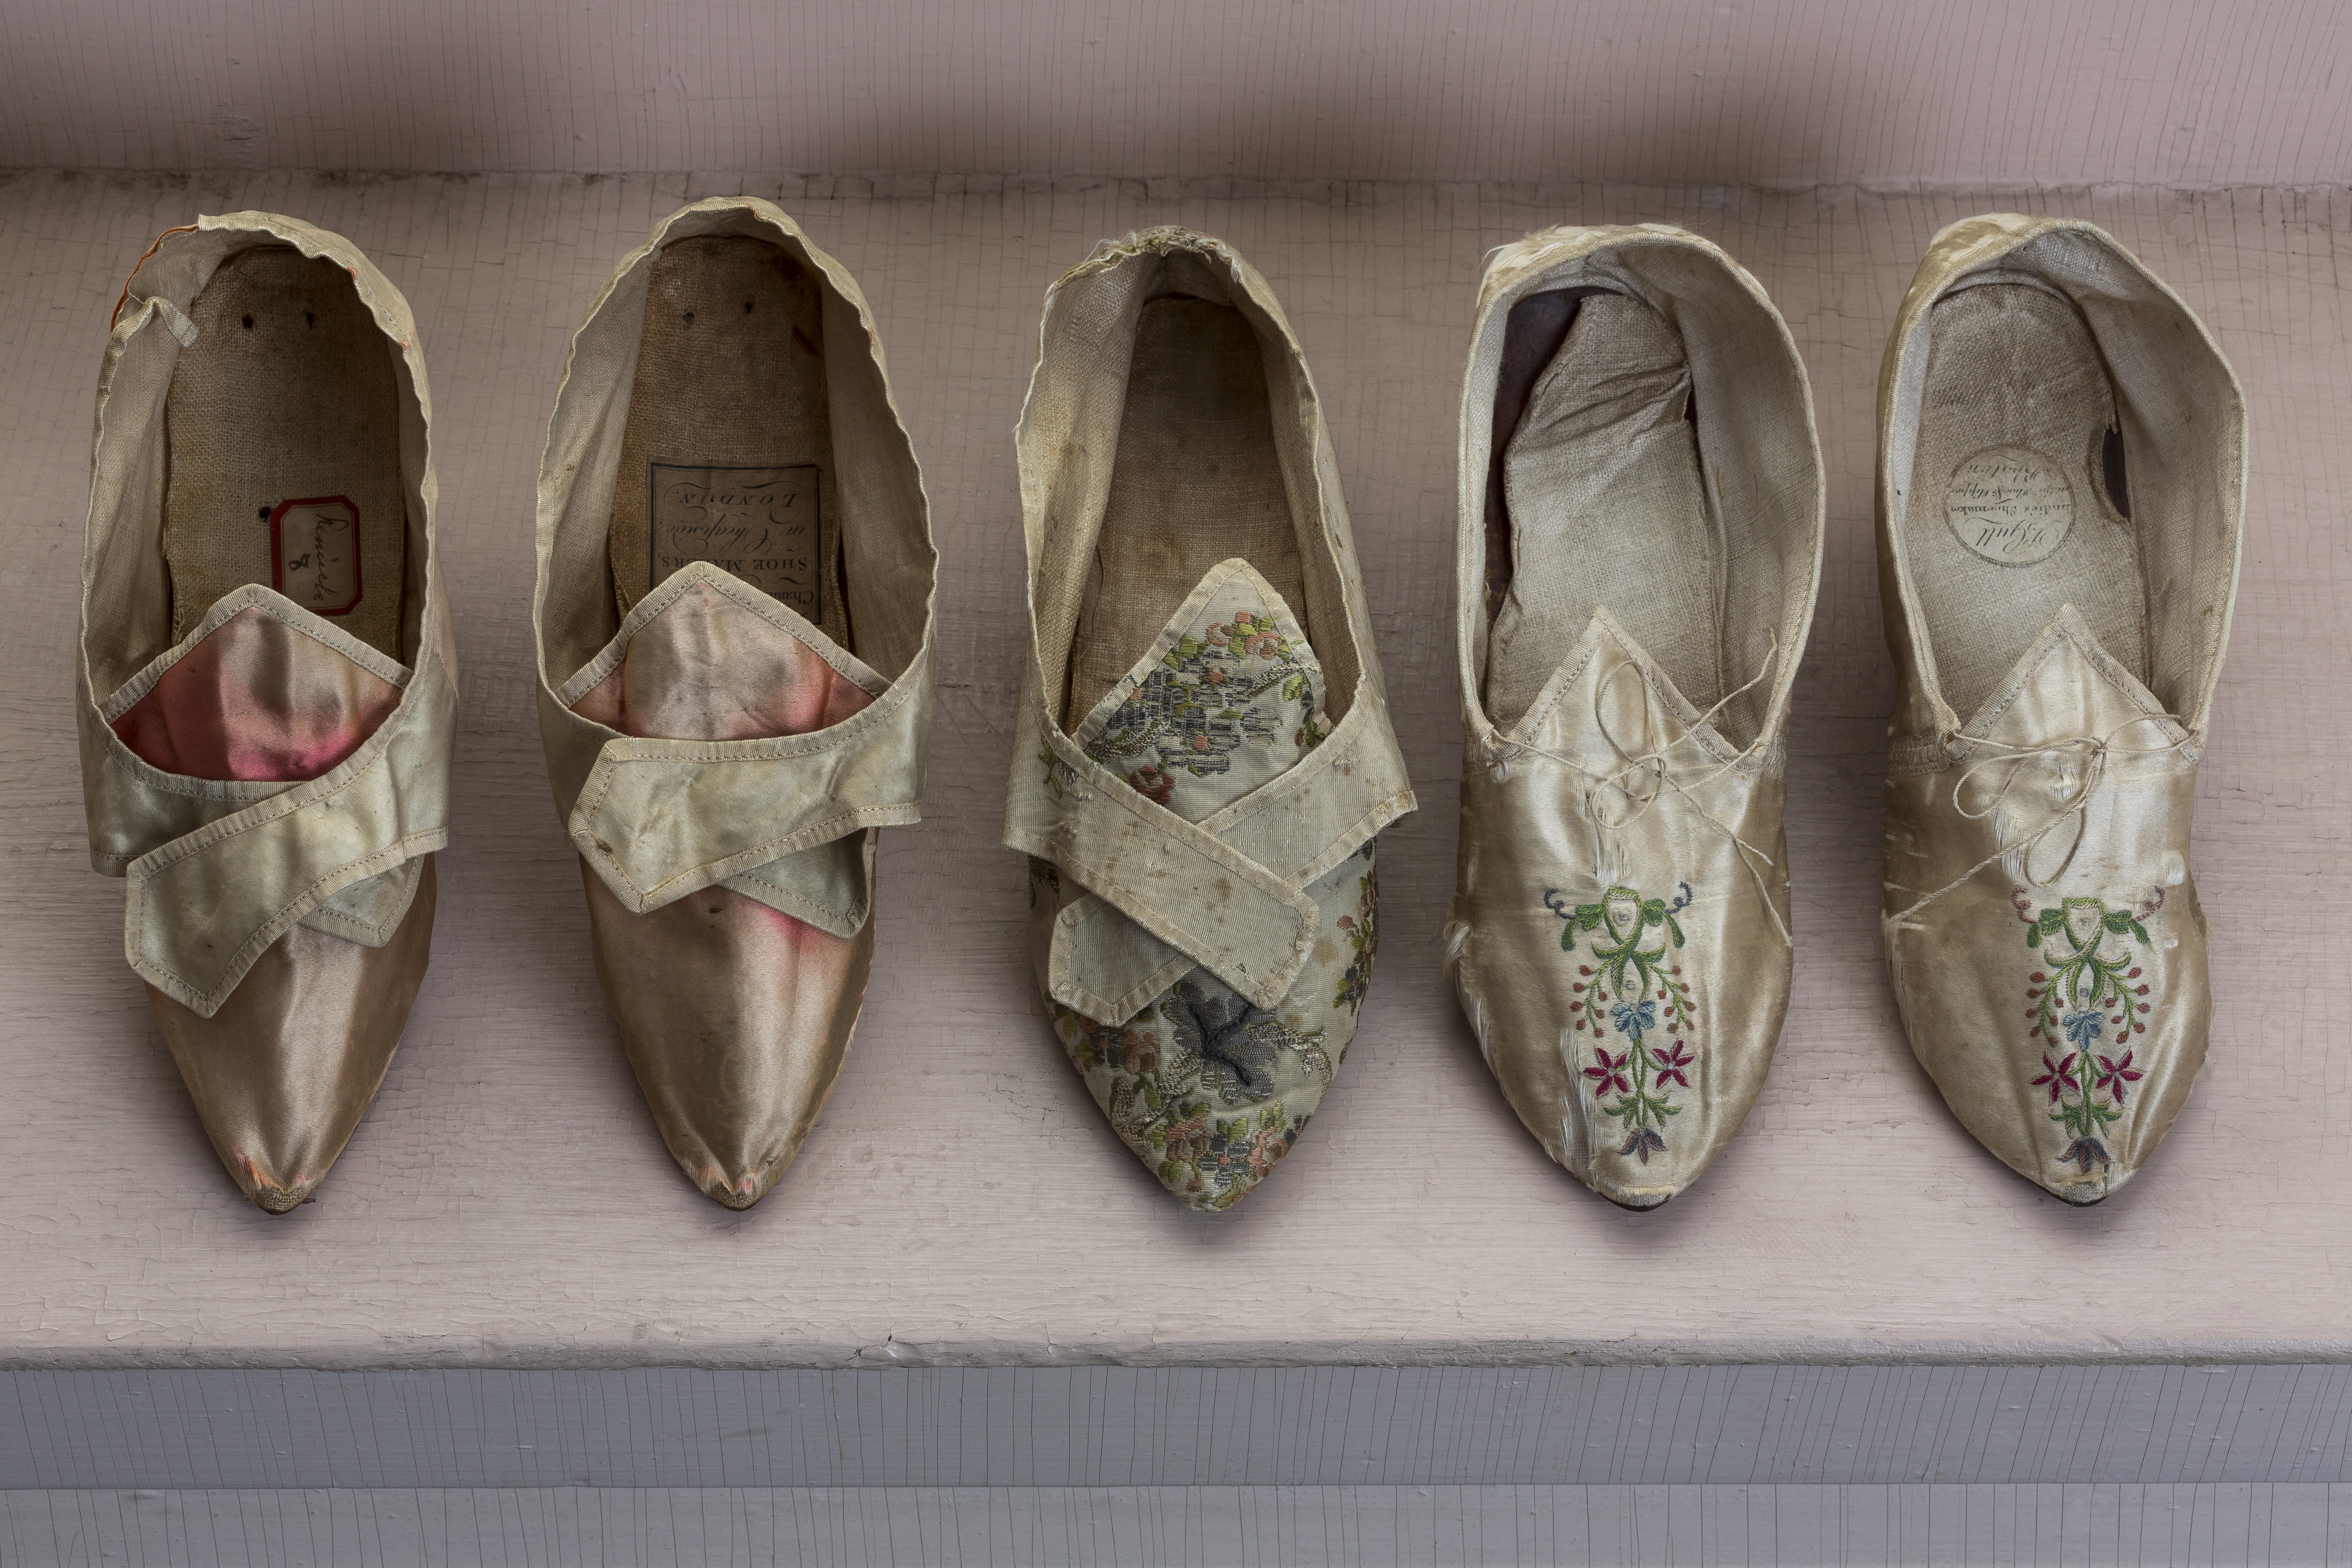 Five women's shoes from the 1780s.